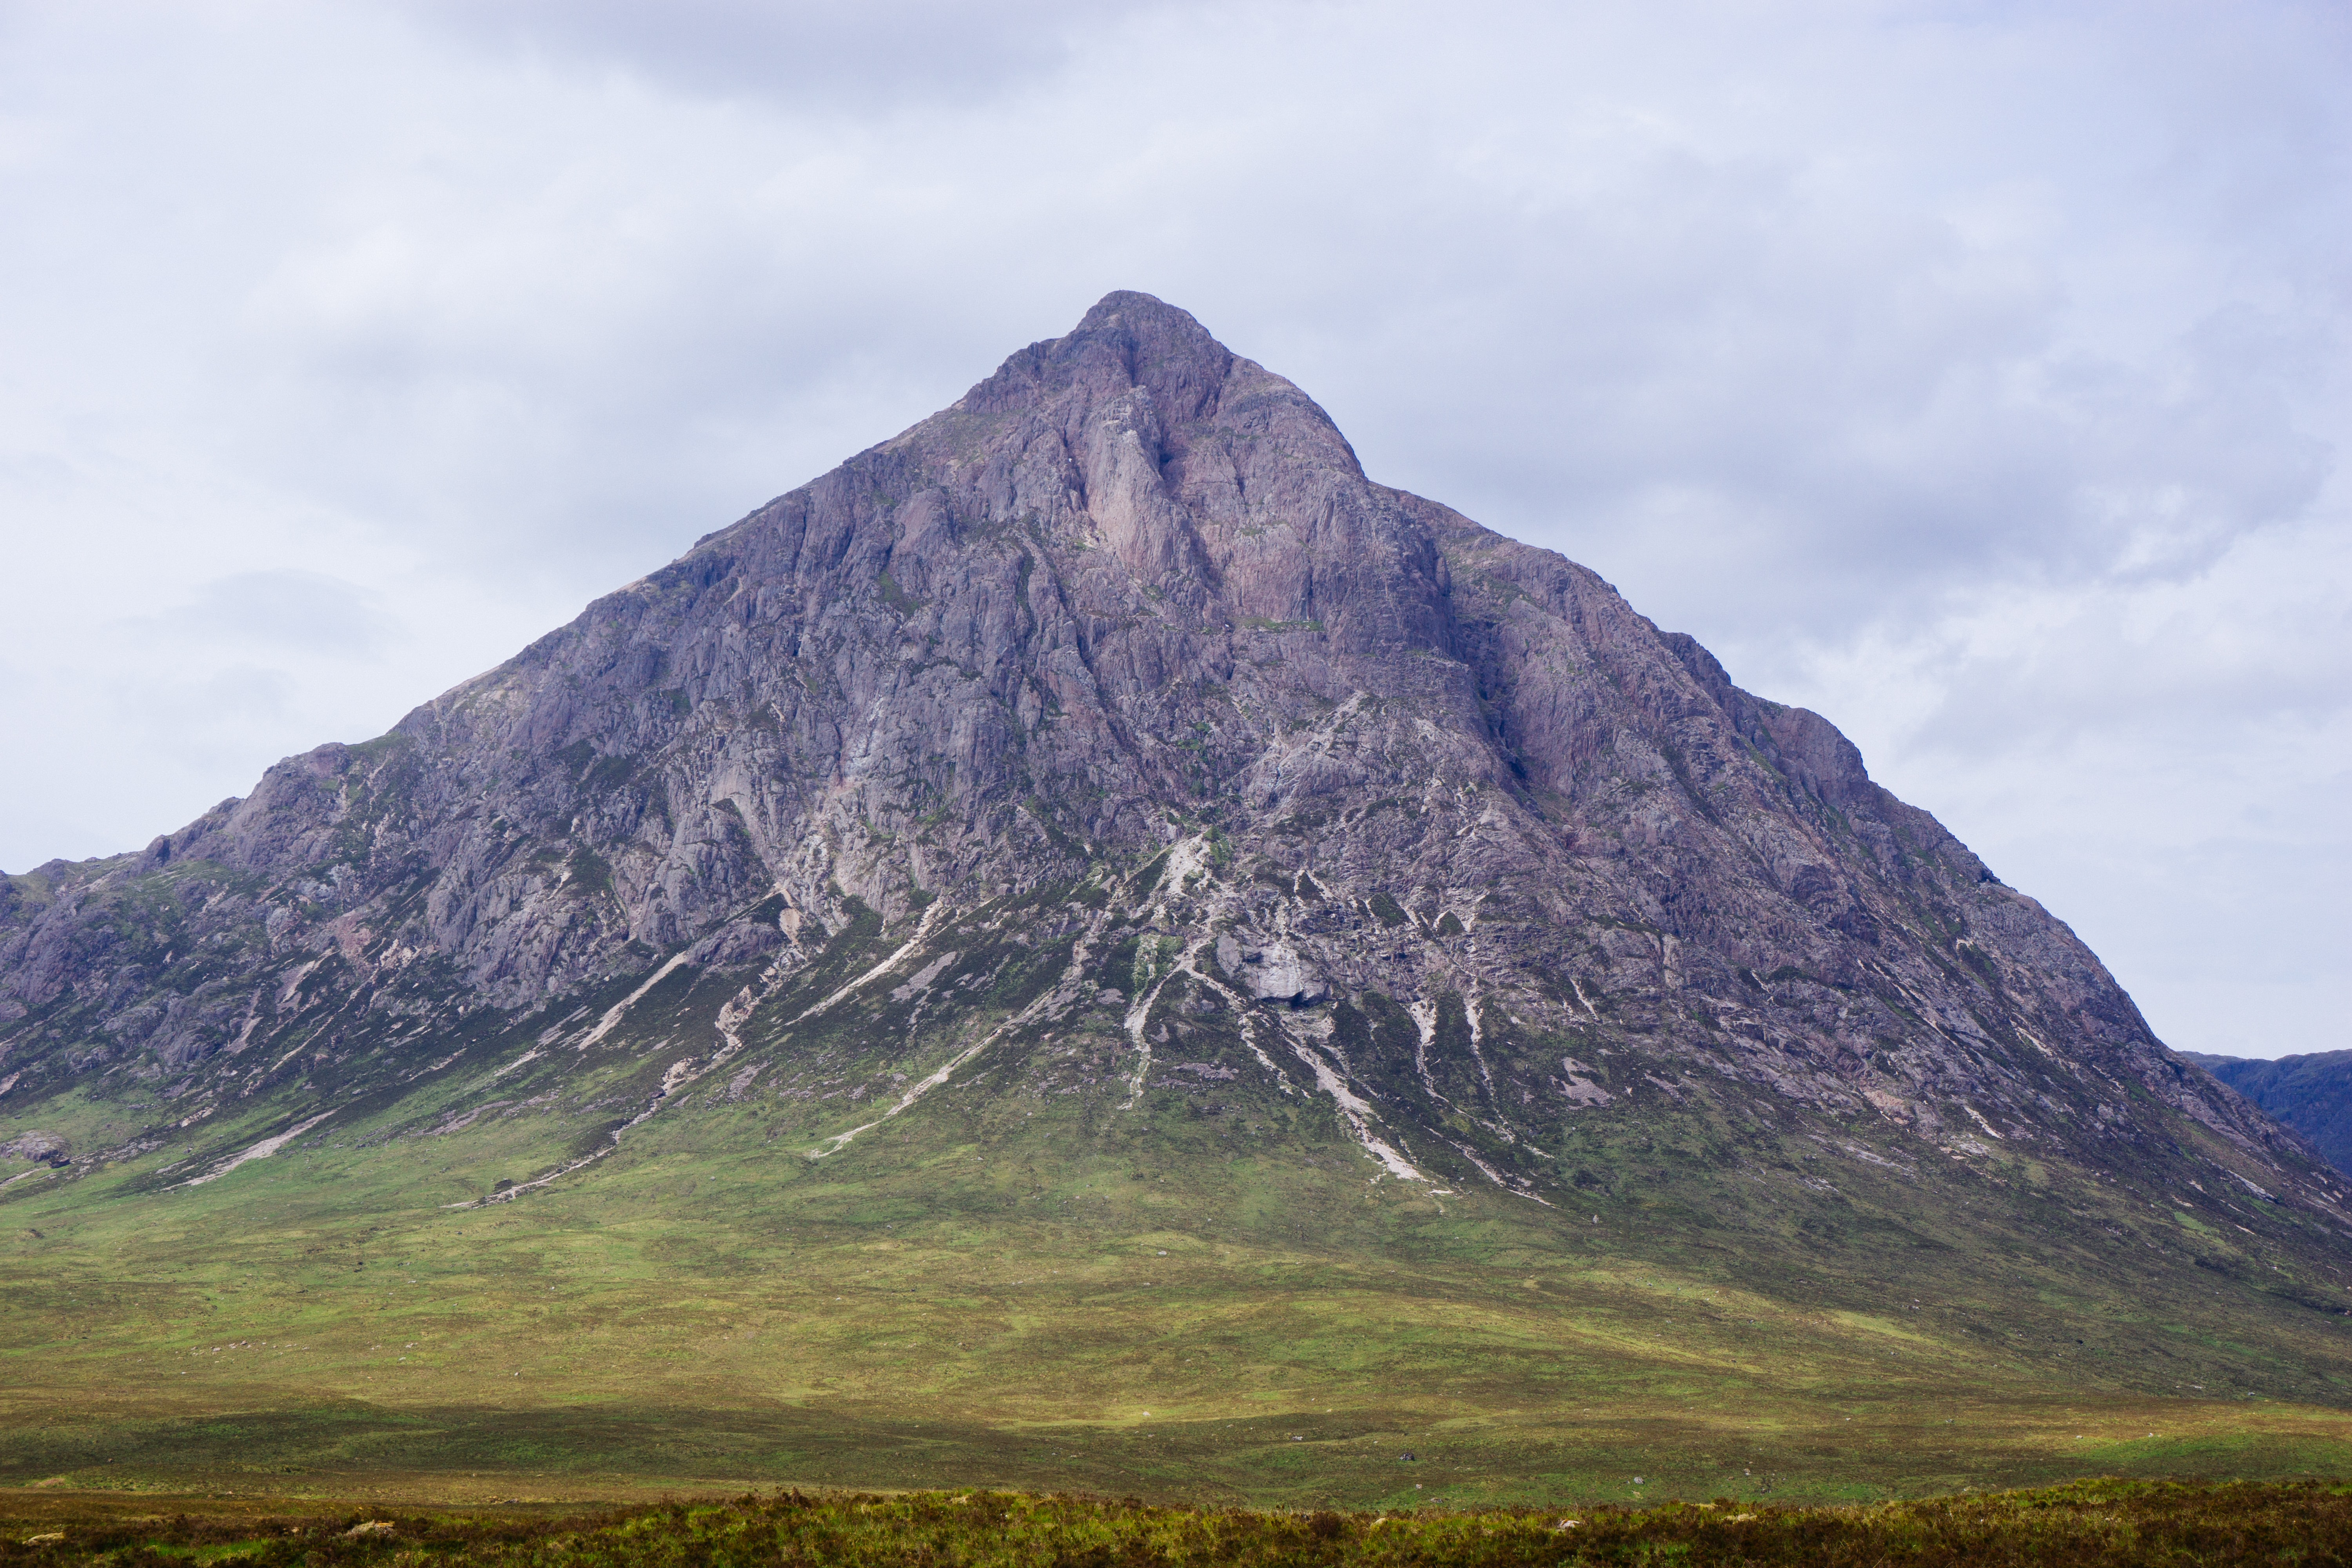 A tall jagged mountain peak in the Scottish Highlands